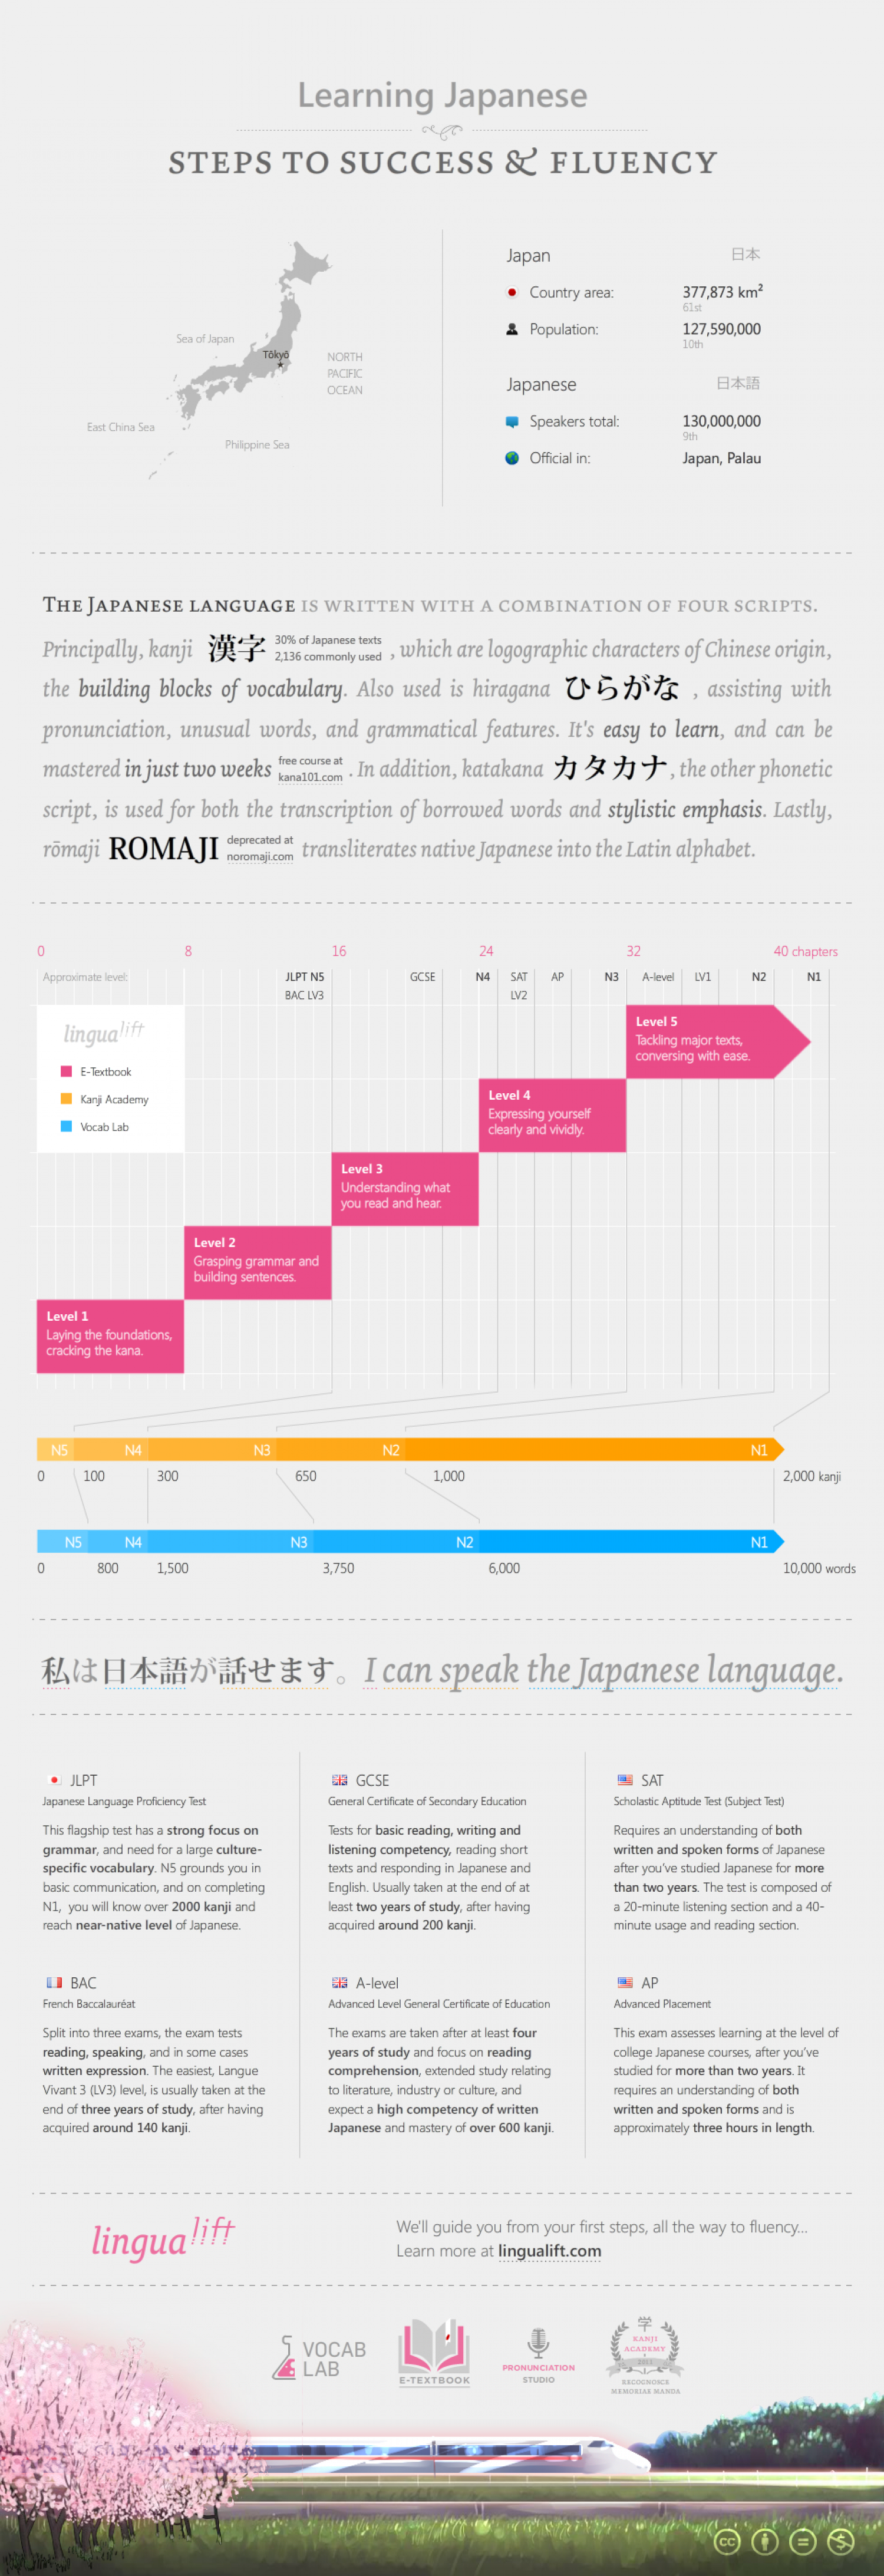 Learning Japanese: Steps to success & fluency Infographic